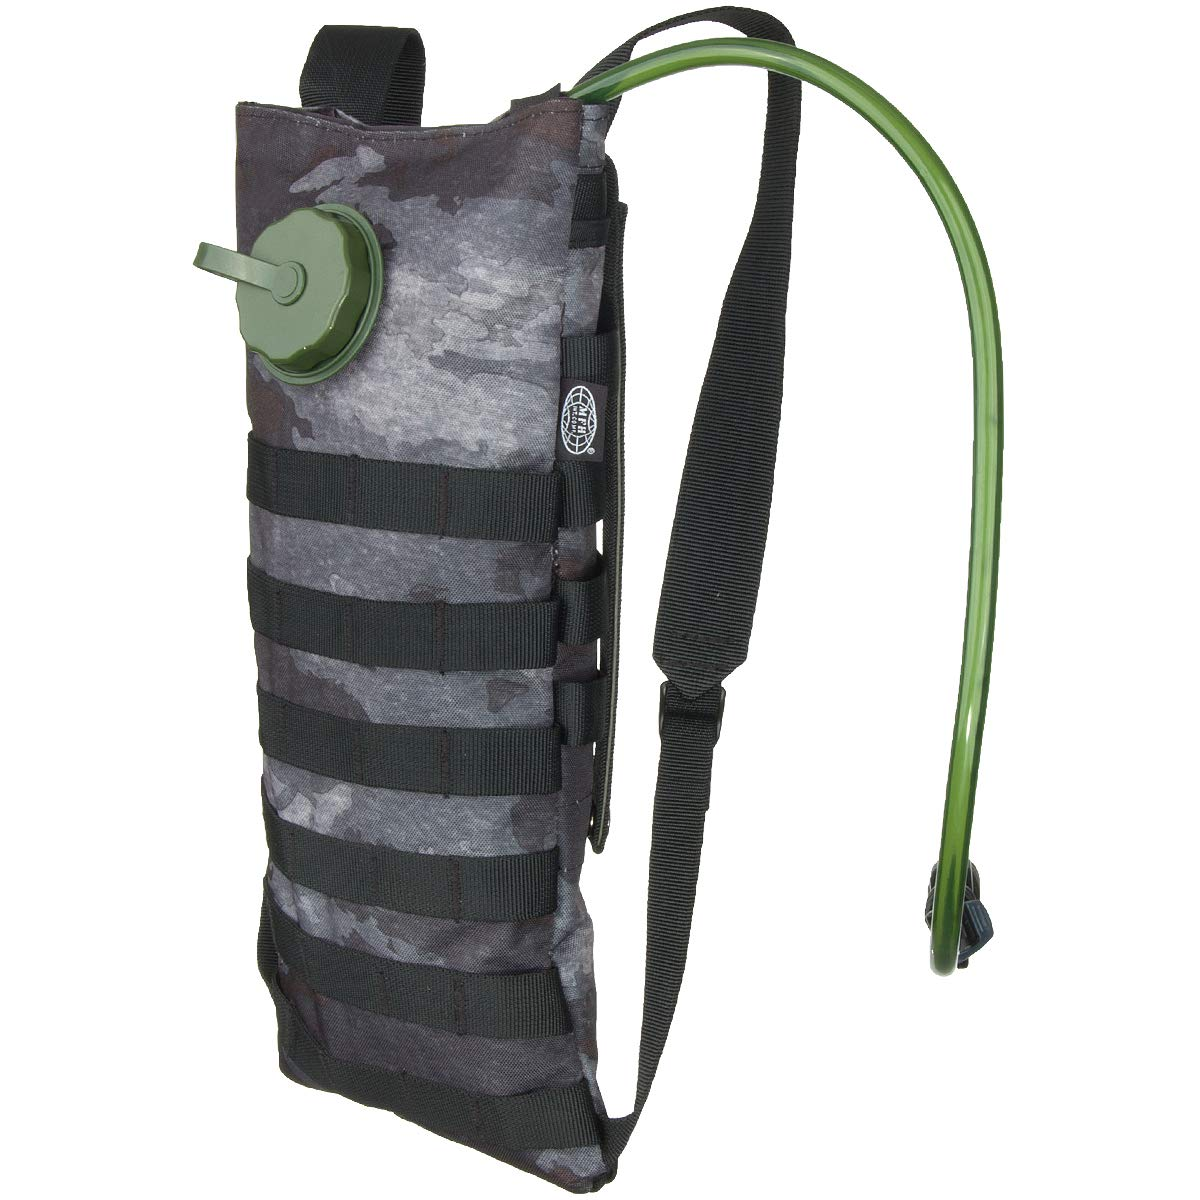 l 2.5 Trinkb MOLLE Hydration System HDT camo LE